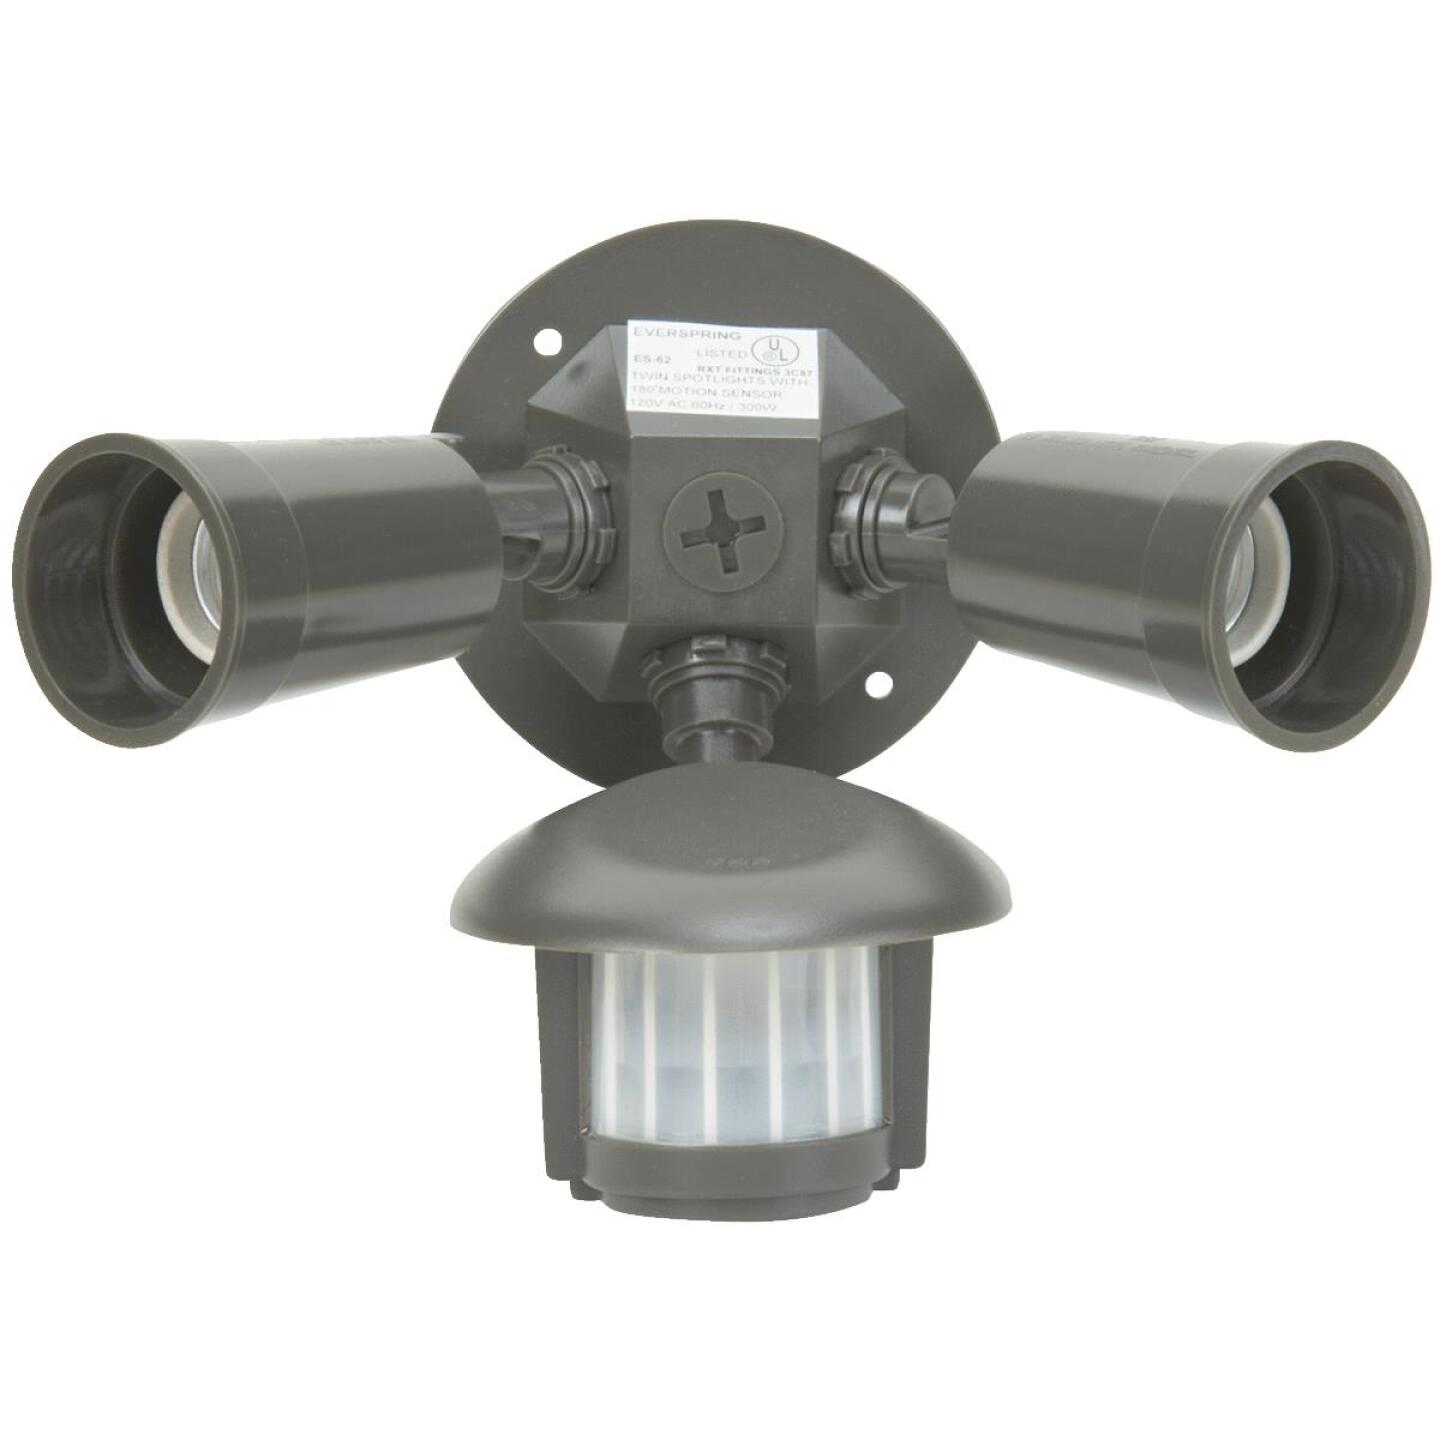 Bronze Motion Sensing Dusk To Dawn Incandescent Floodlight Fixture Image 2